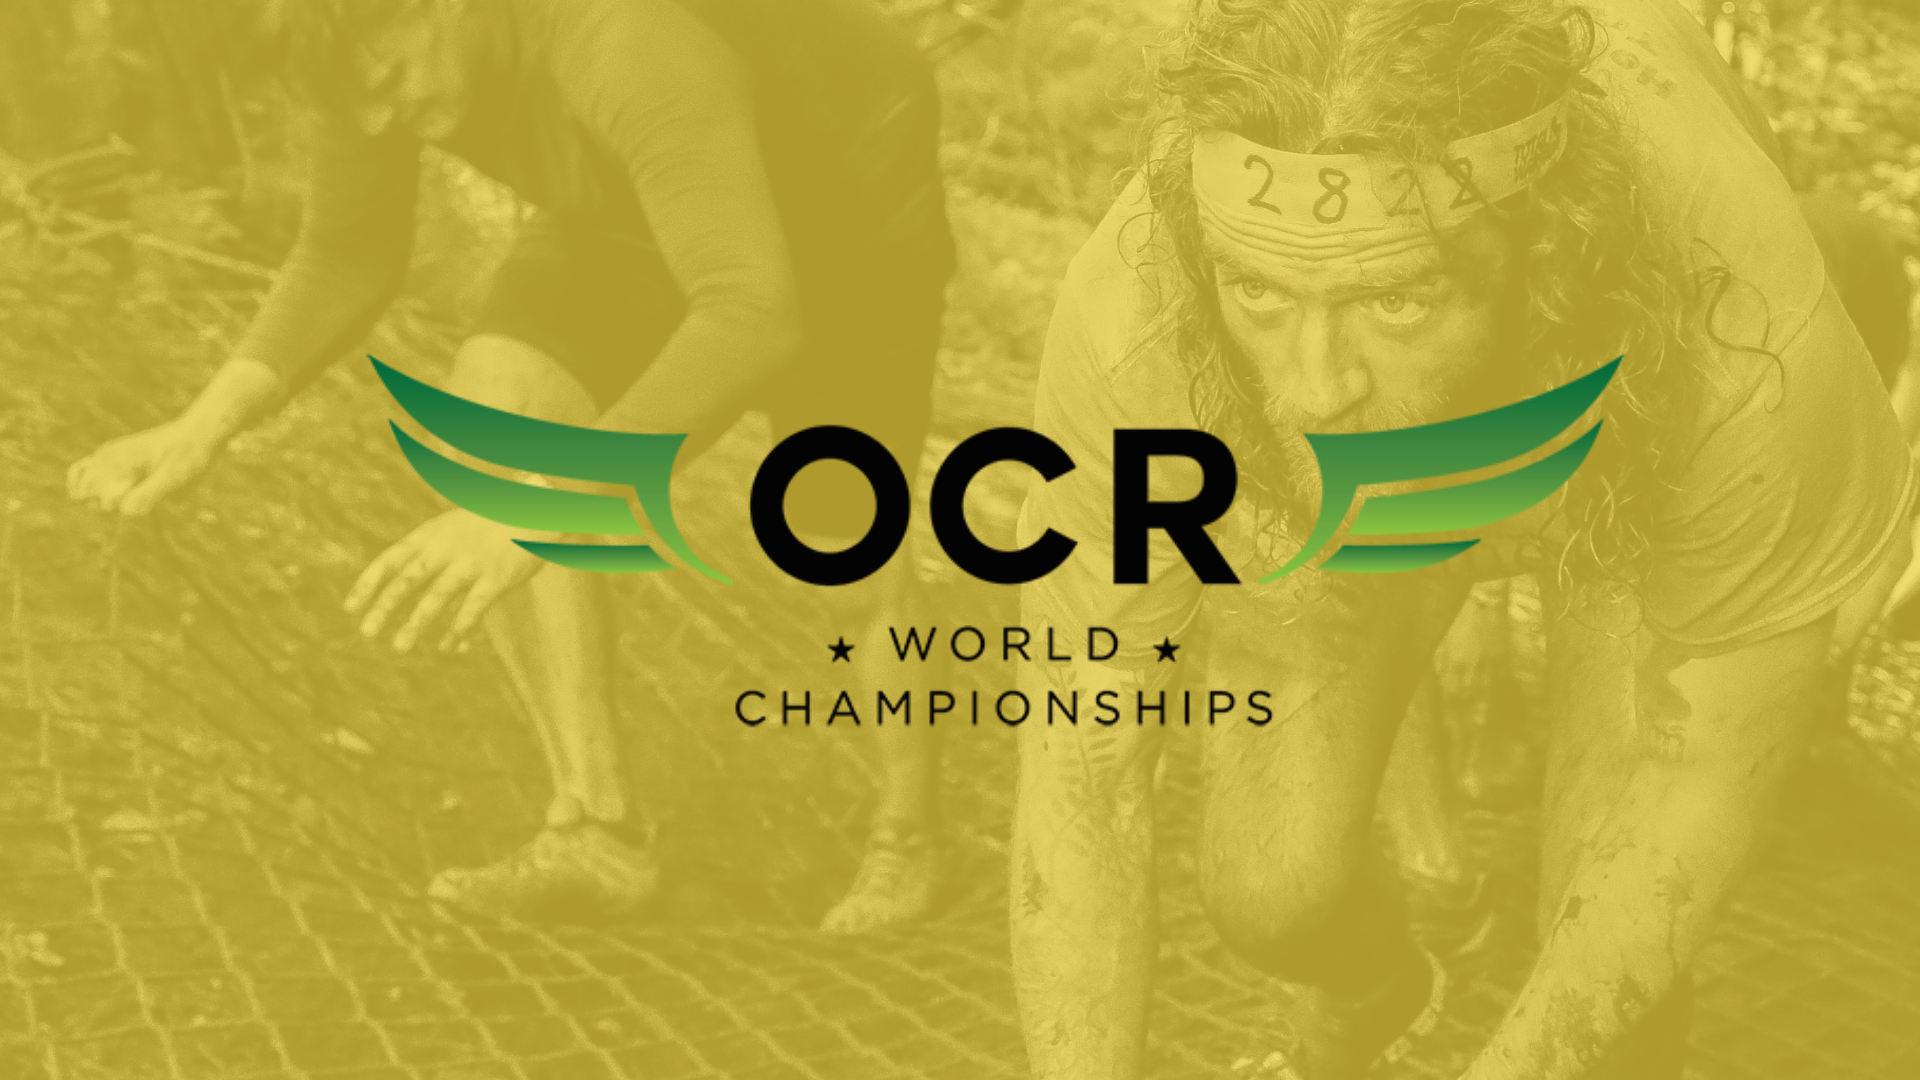 Yorkshire's Best Bound for OCR Championships 2019